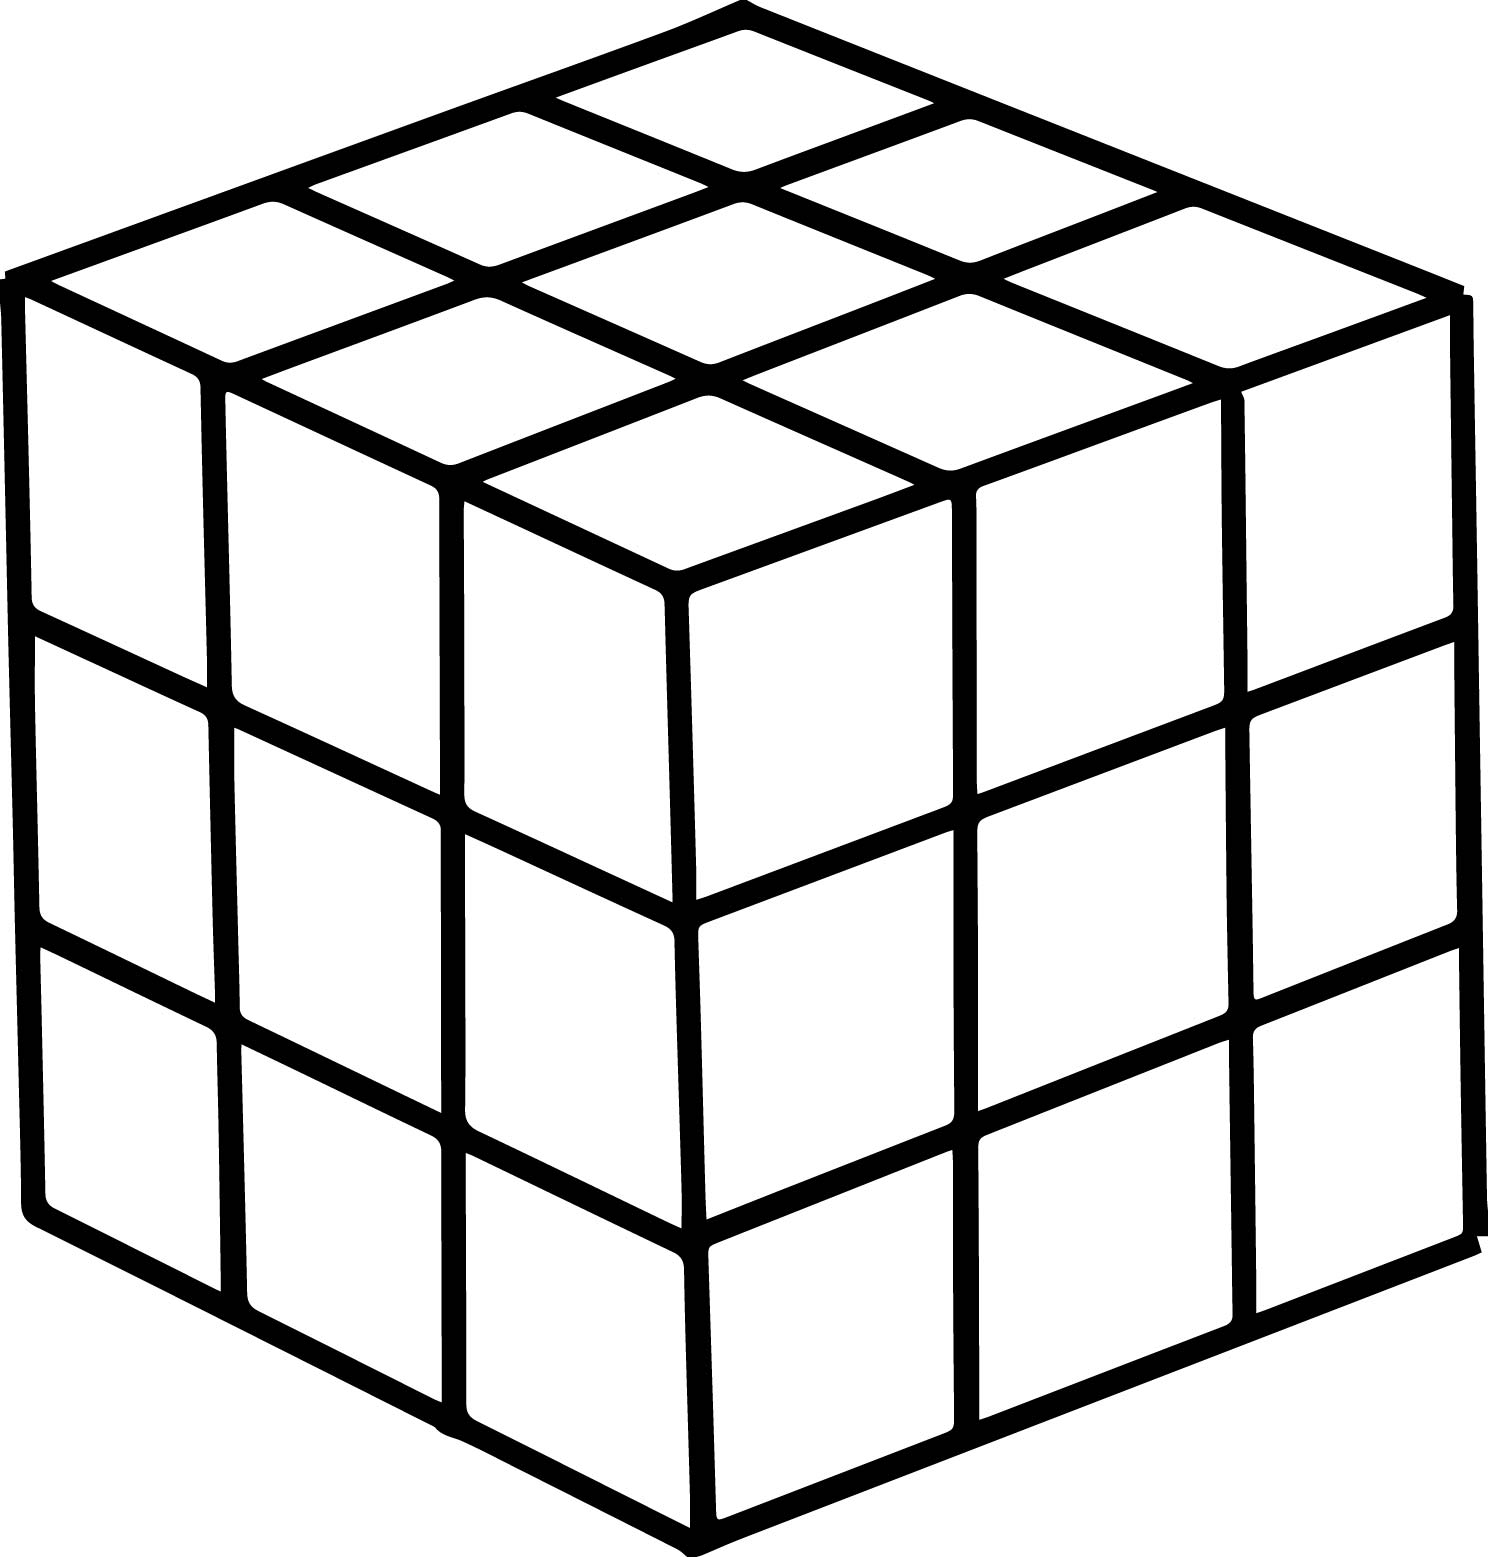 1488x1557 80s Puzzle Box Coloring Page Wecoloringpage